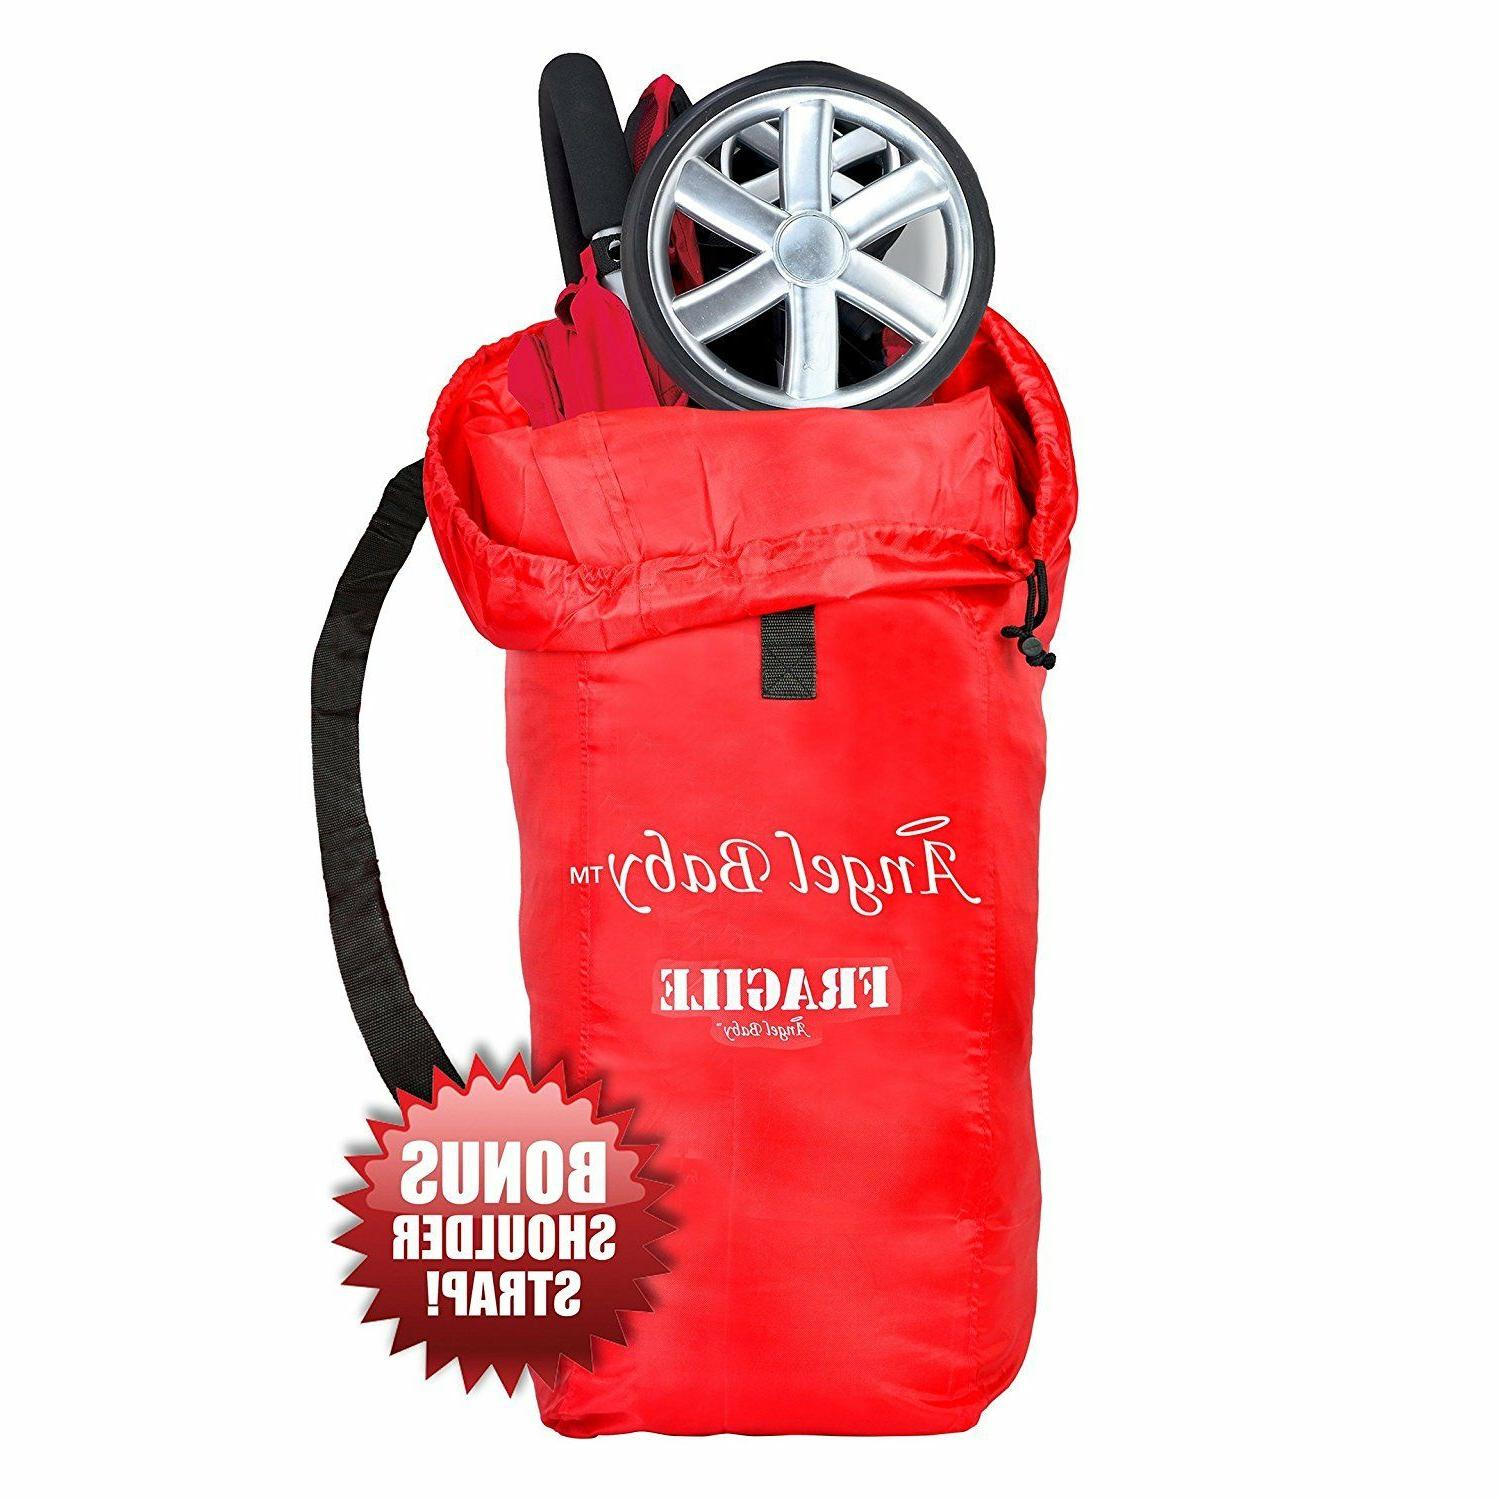 UMBRELLA STROLLER TRAVEL BAG Cover - DURABLE Polyester with